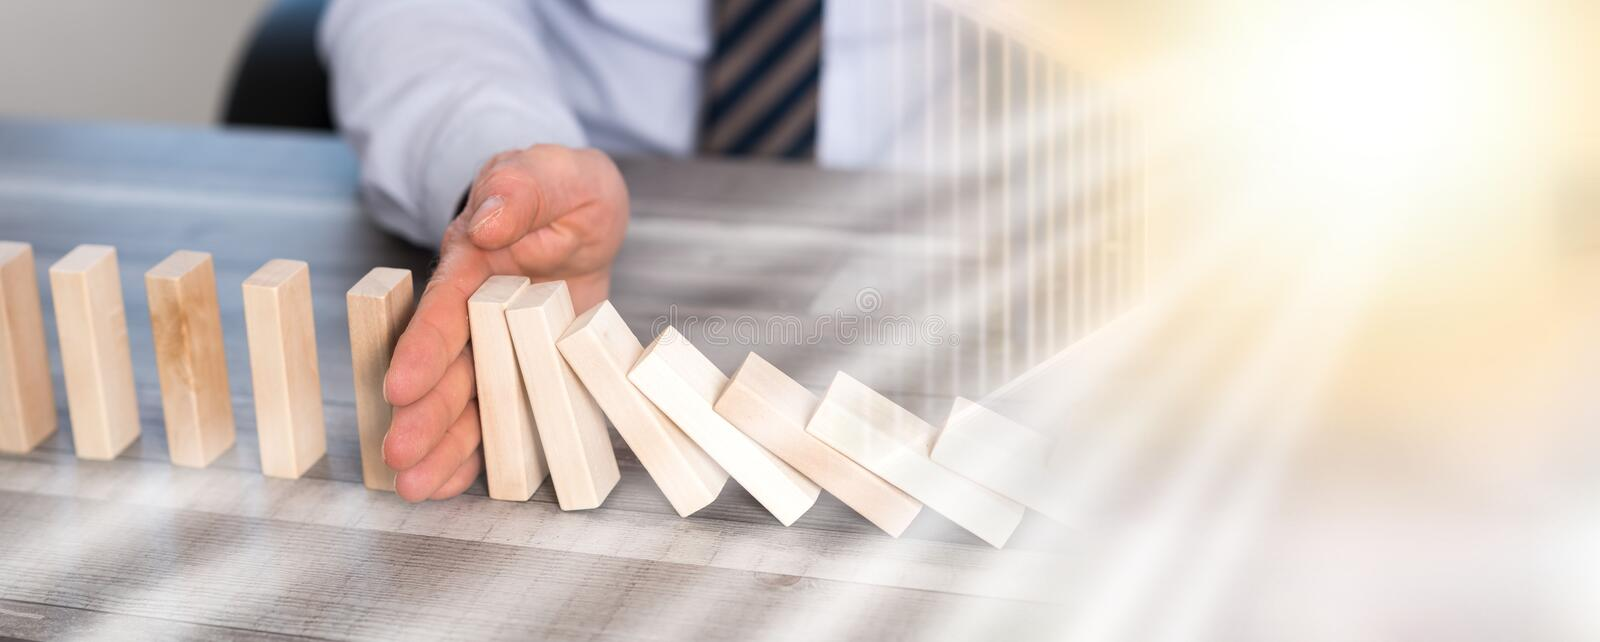 Concept of business control by stopping domino effect; multiple exposure royalty free stock photo